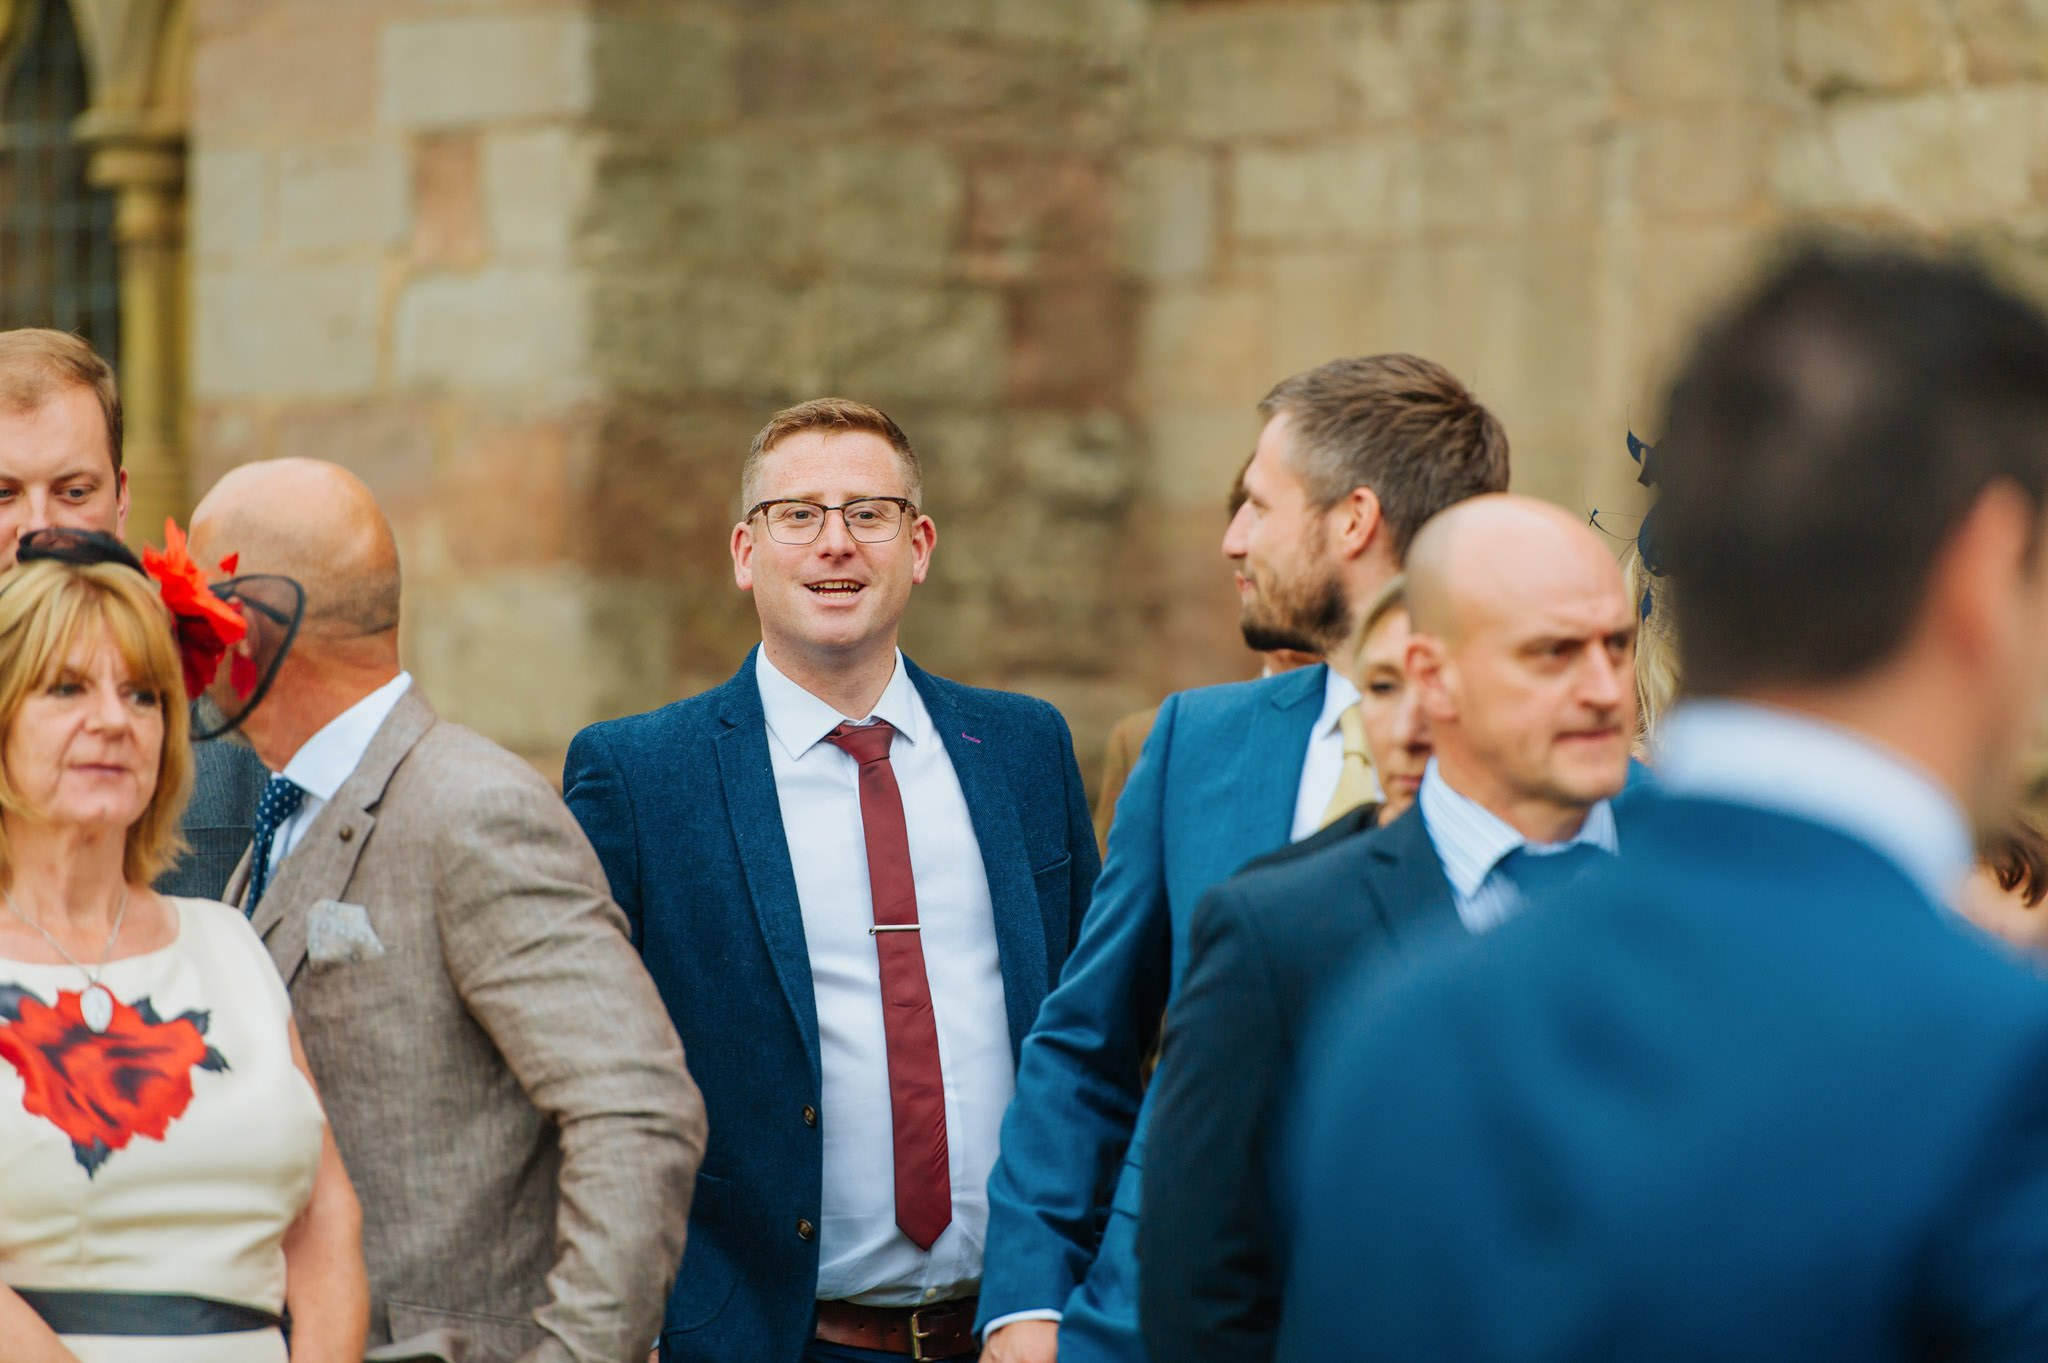 eastnor castle wedding pictures 44 - Eastnor Castle wedding photographer Herefordshire, West Midlands - Sarah + Dean